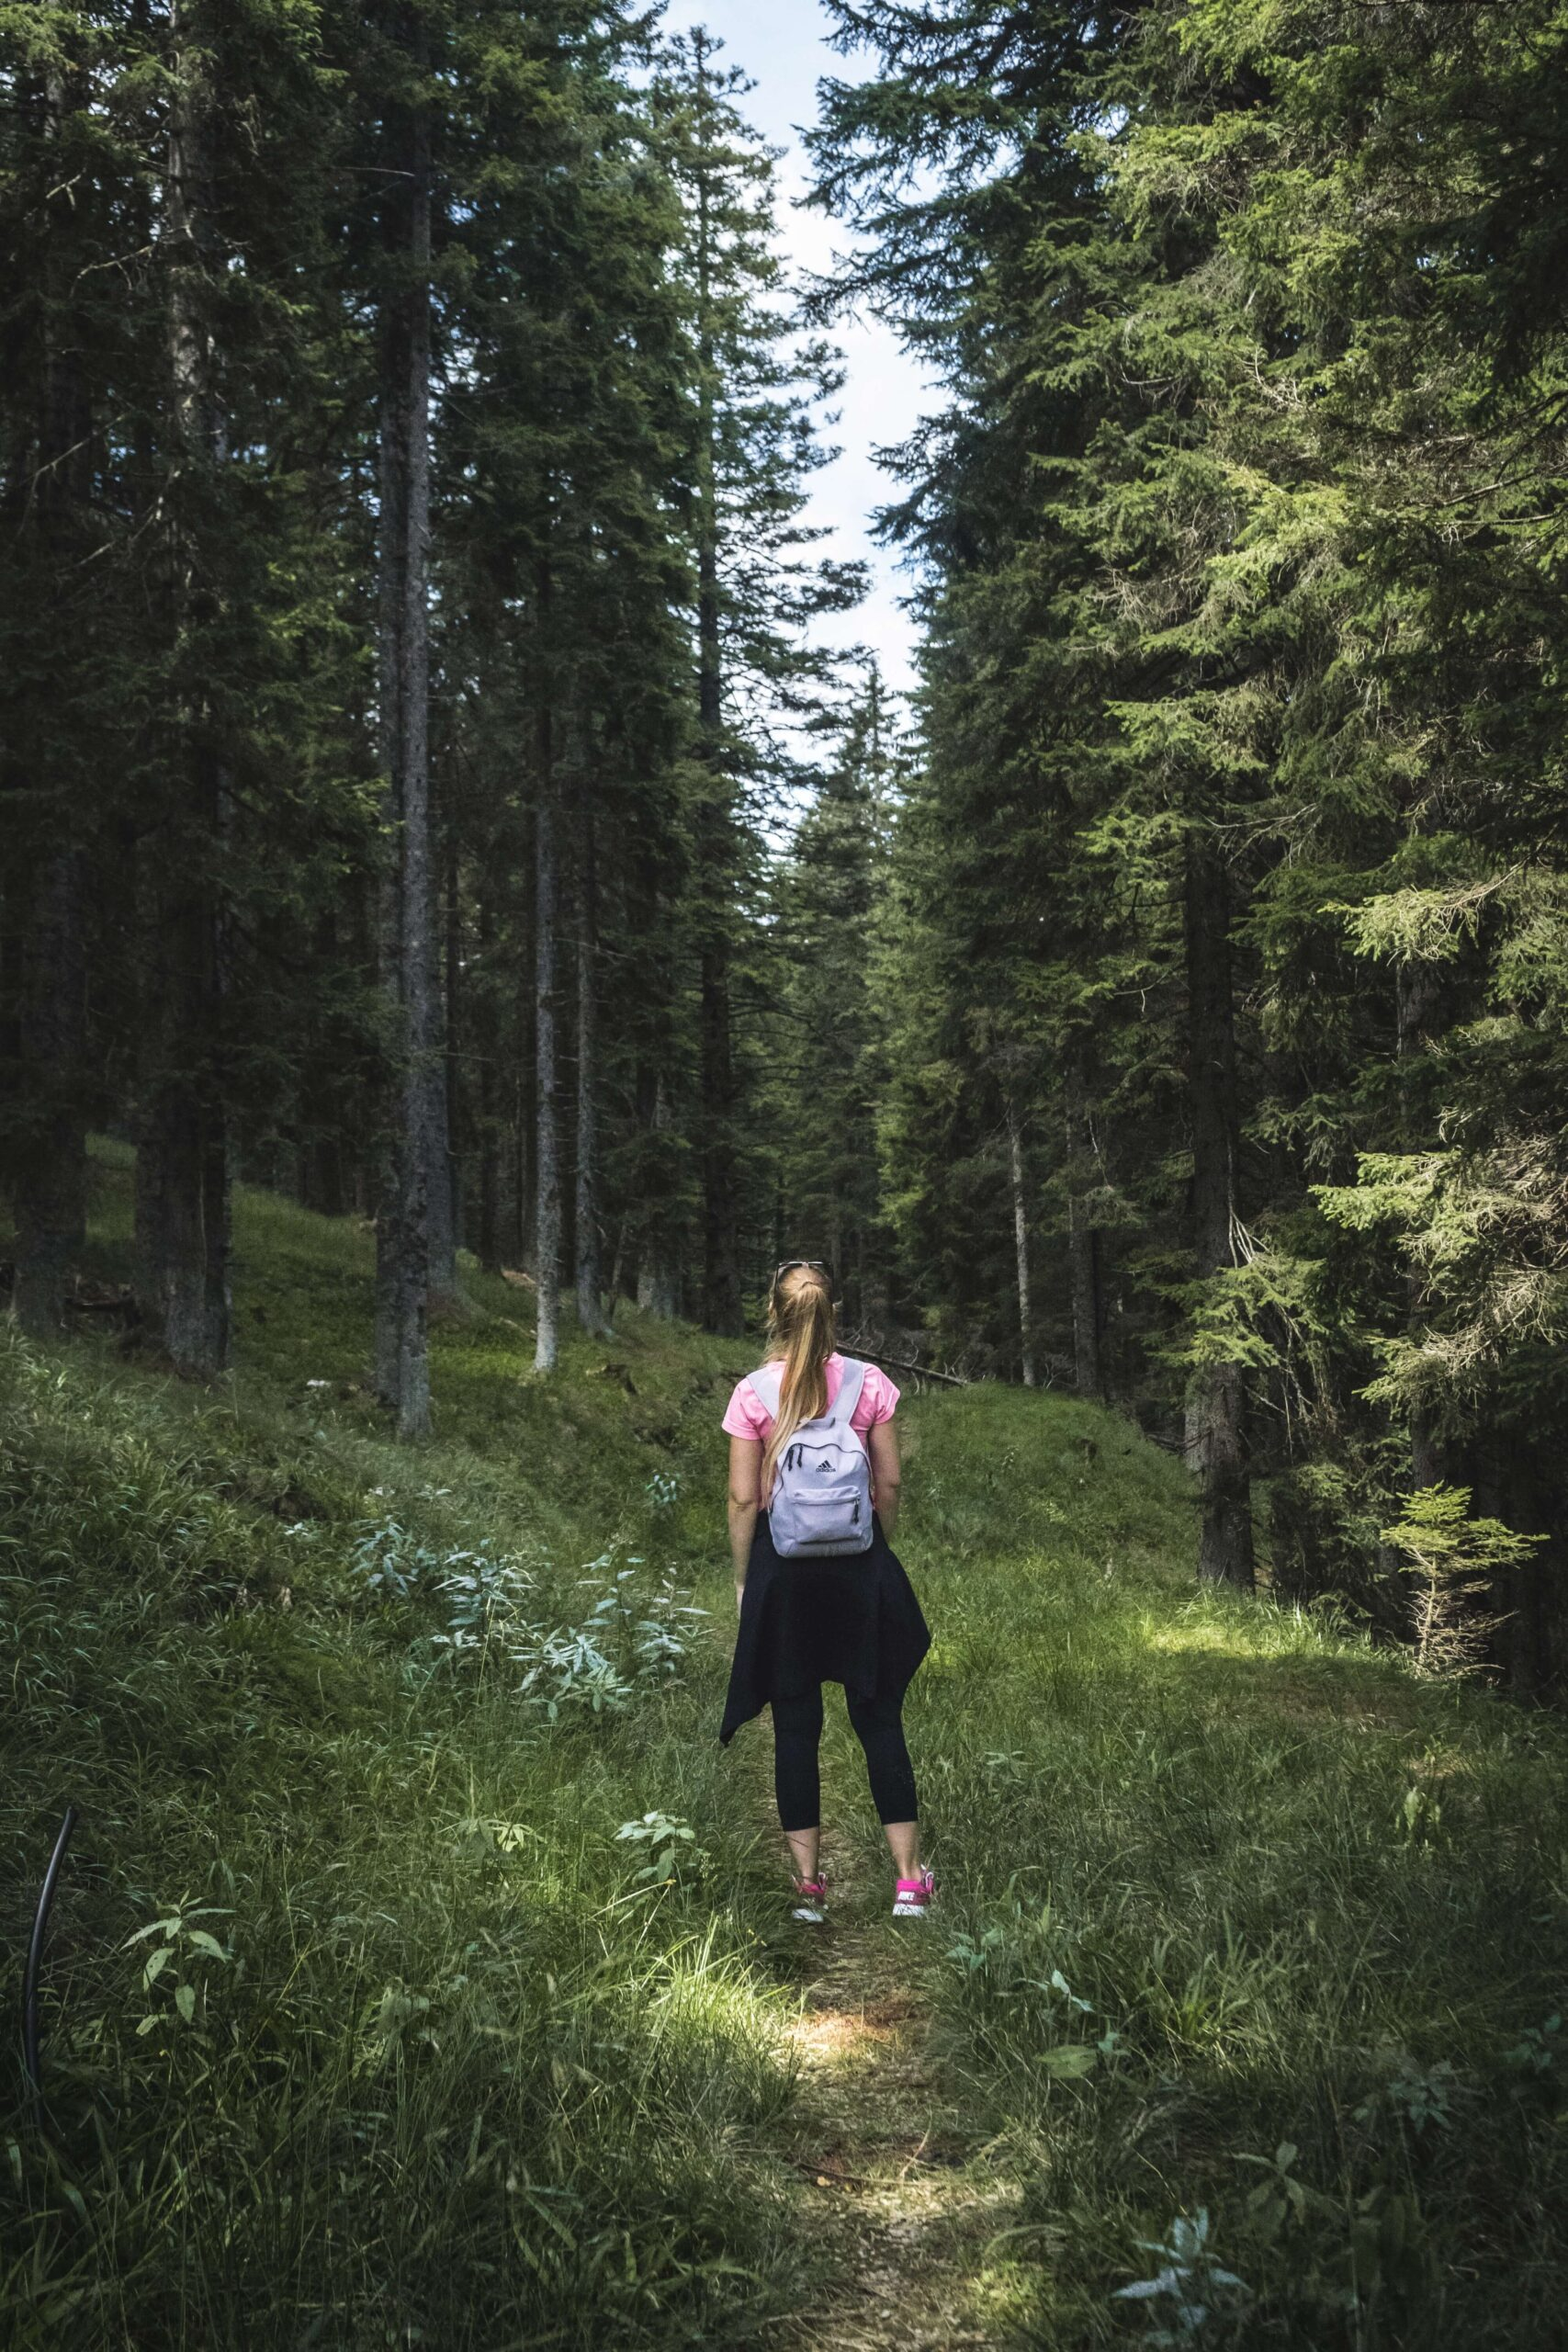 Woman walking through forest with backpack